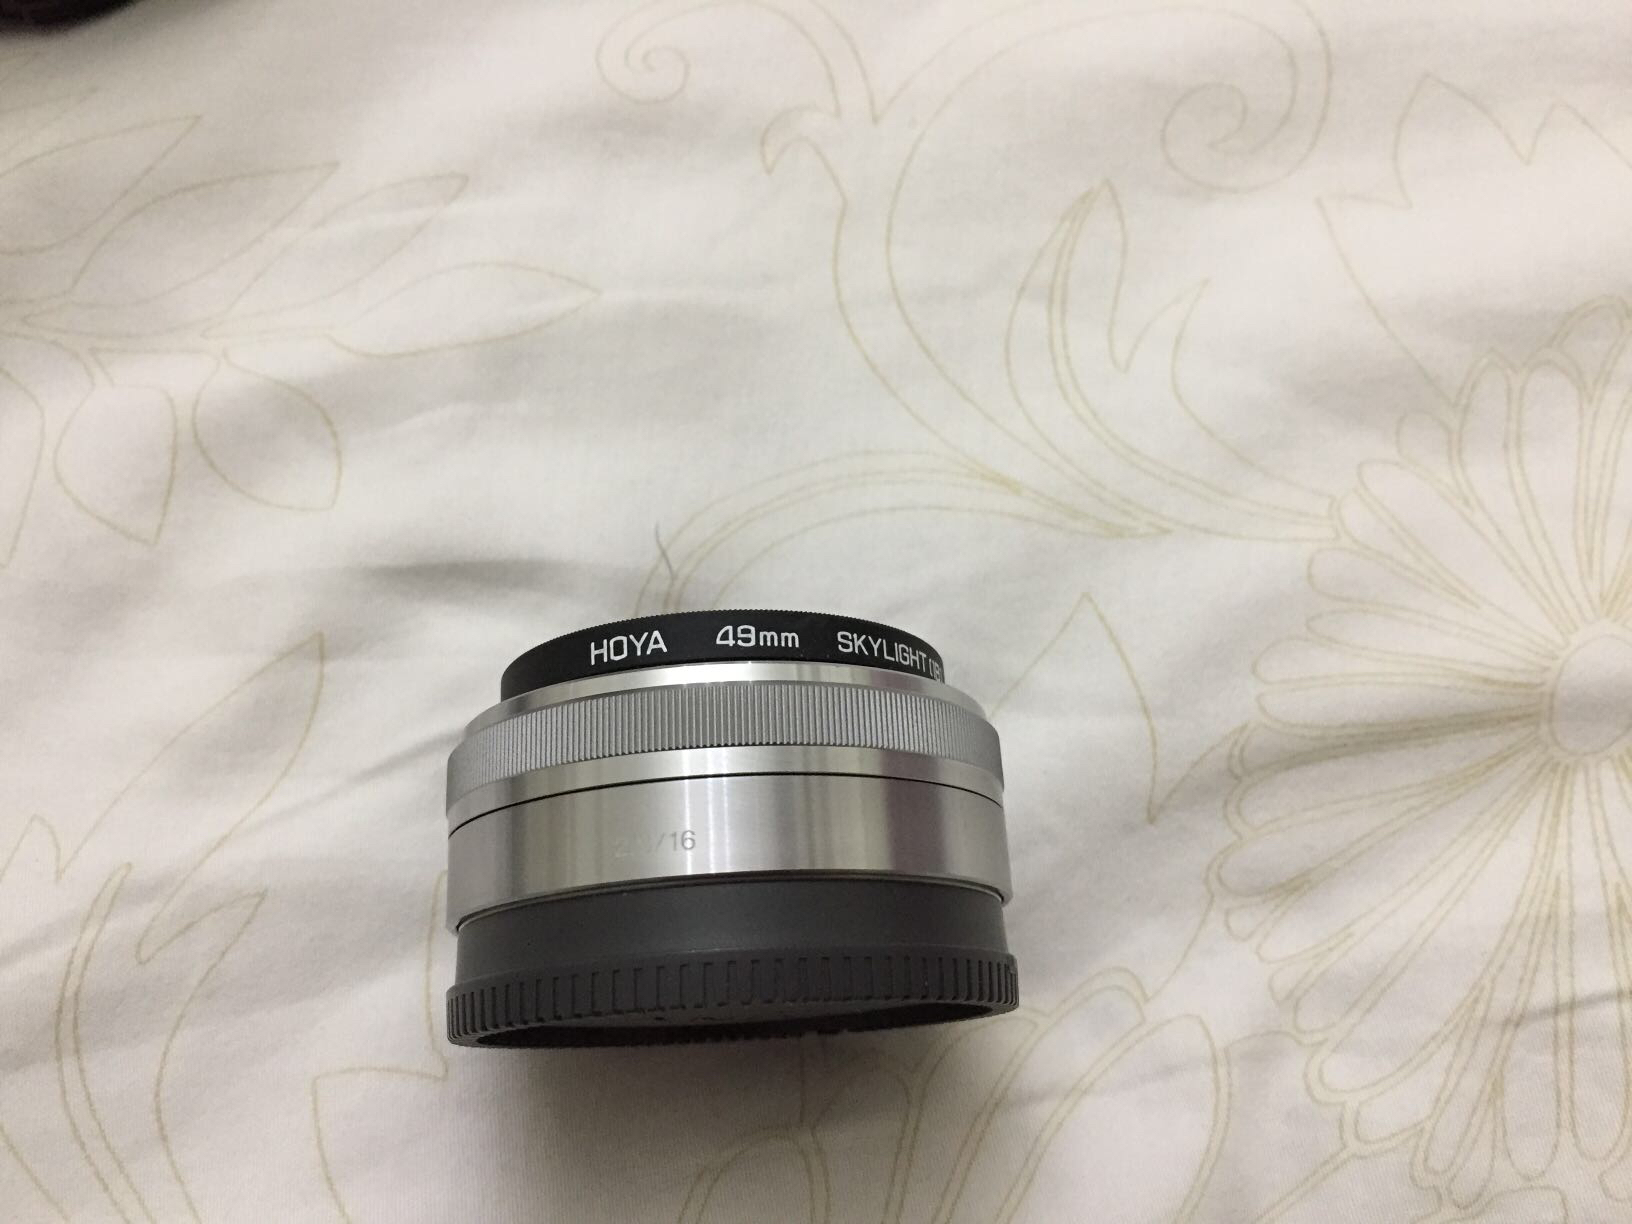 Sony nex 5r touch screen עדשות 16 mm 18-55 mm 50-200 mm